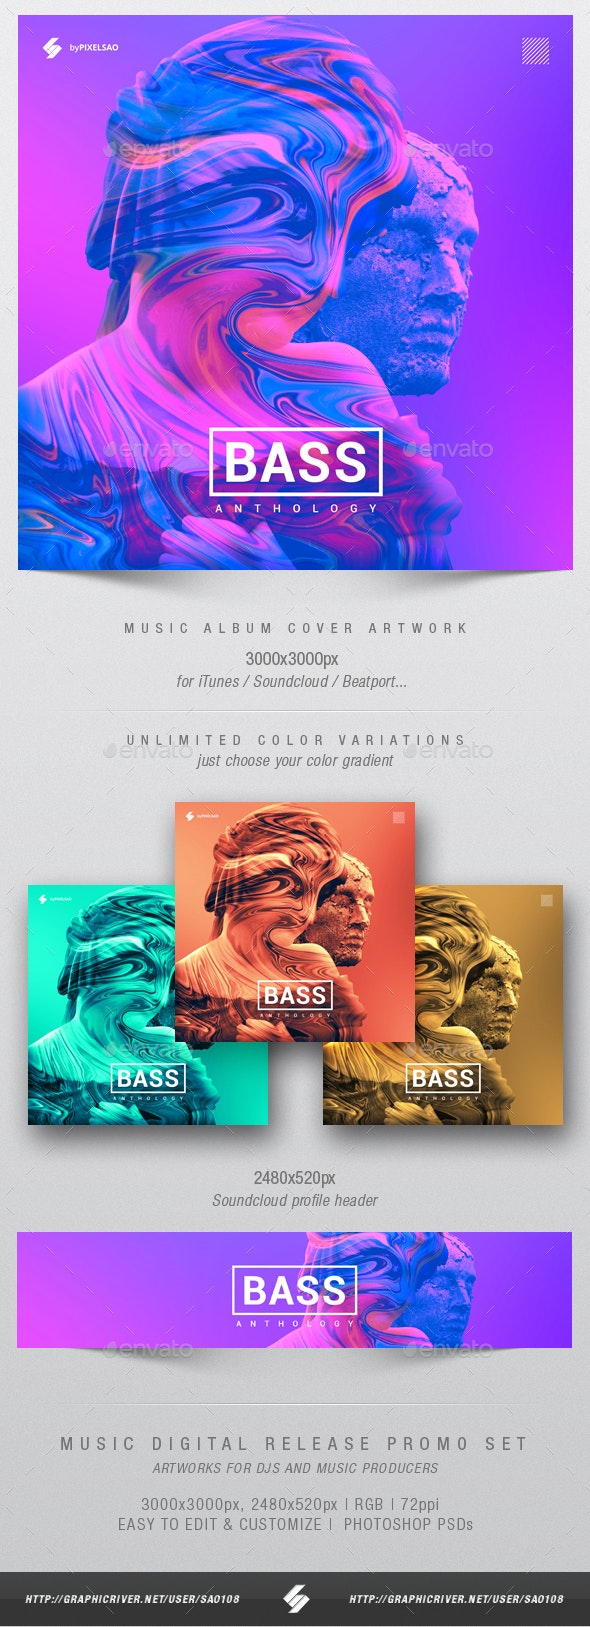 Bass Anthology - Music Album Cover Artwork Template - Miscellaneous Social Media